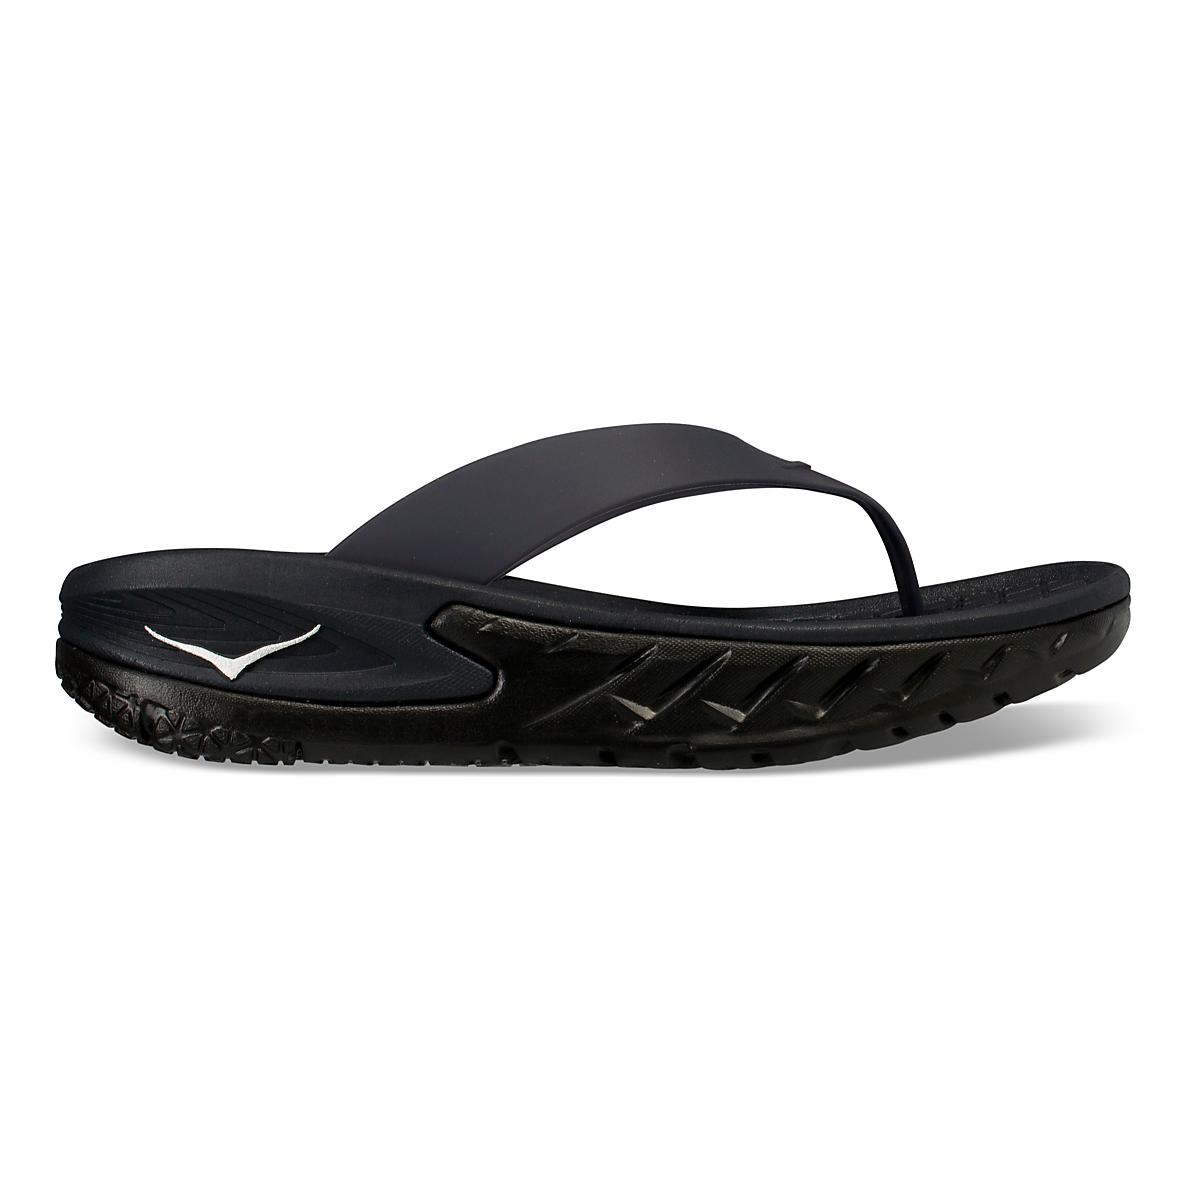 3d1c1356efd5 Womens Hoka One One Ora Recovery Flip Sandals Shoe at Road Runner Sports